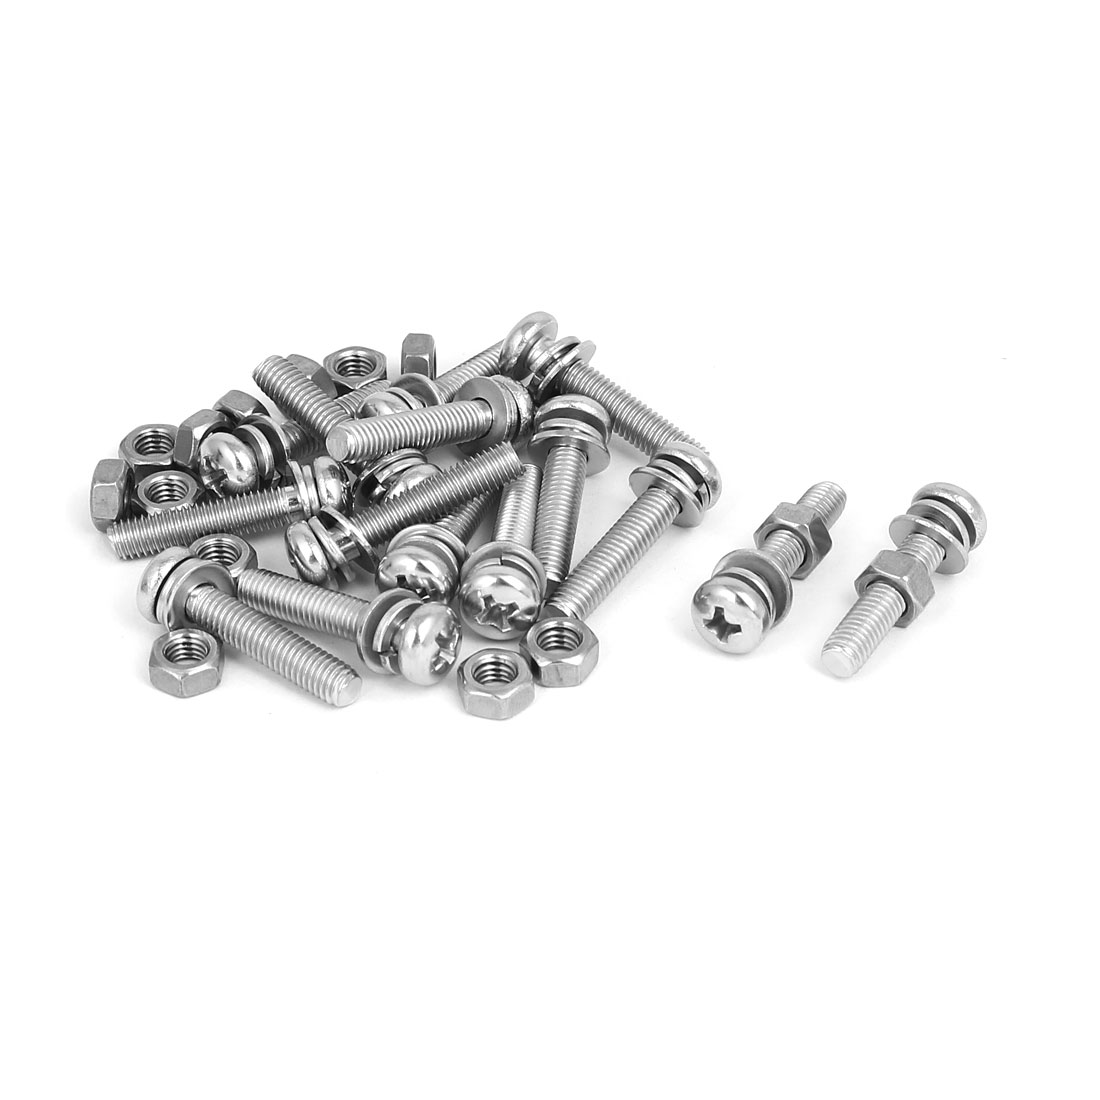 M5 x 25mm 304 Stainless Steel Phillips Pan Head Screws Nuts w Washers 15 Sets